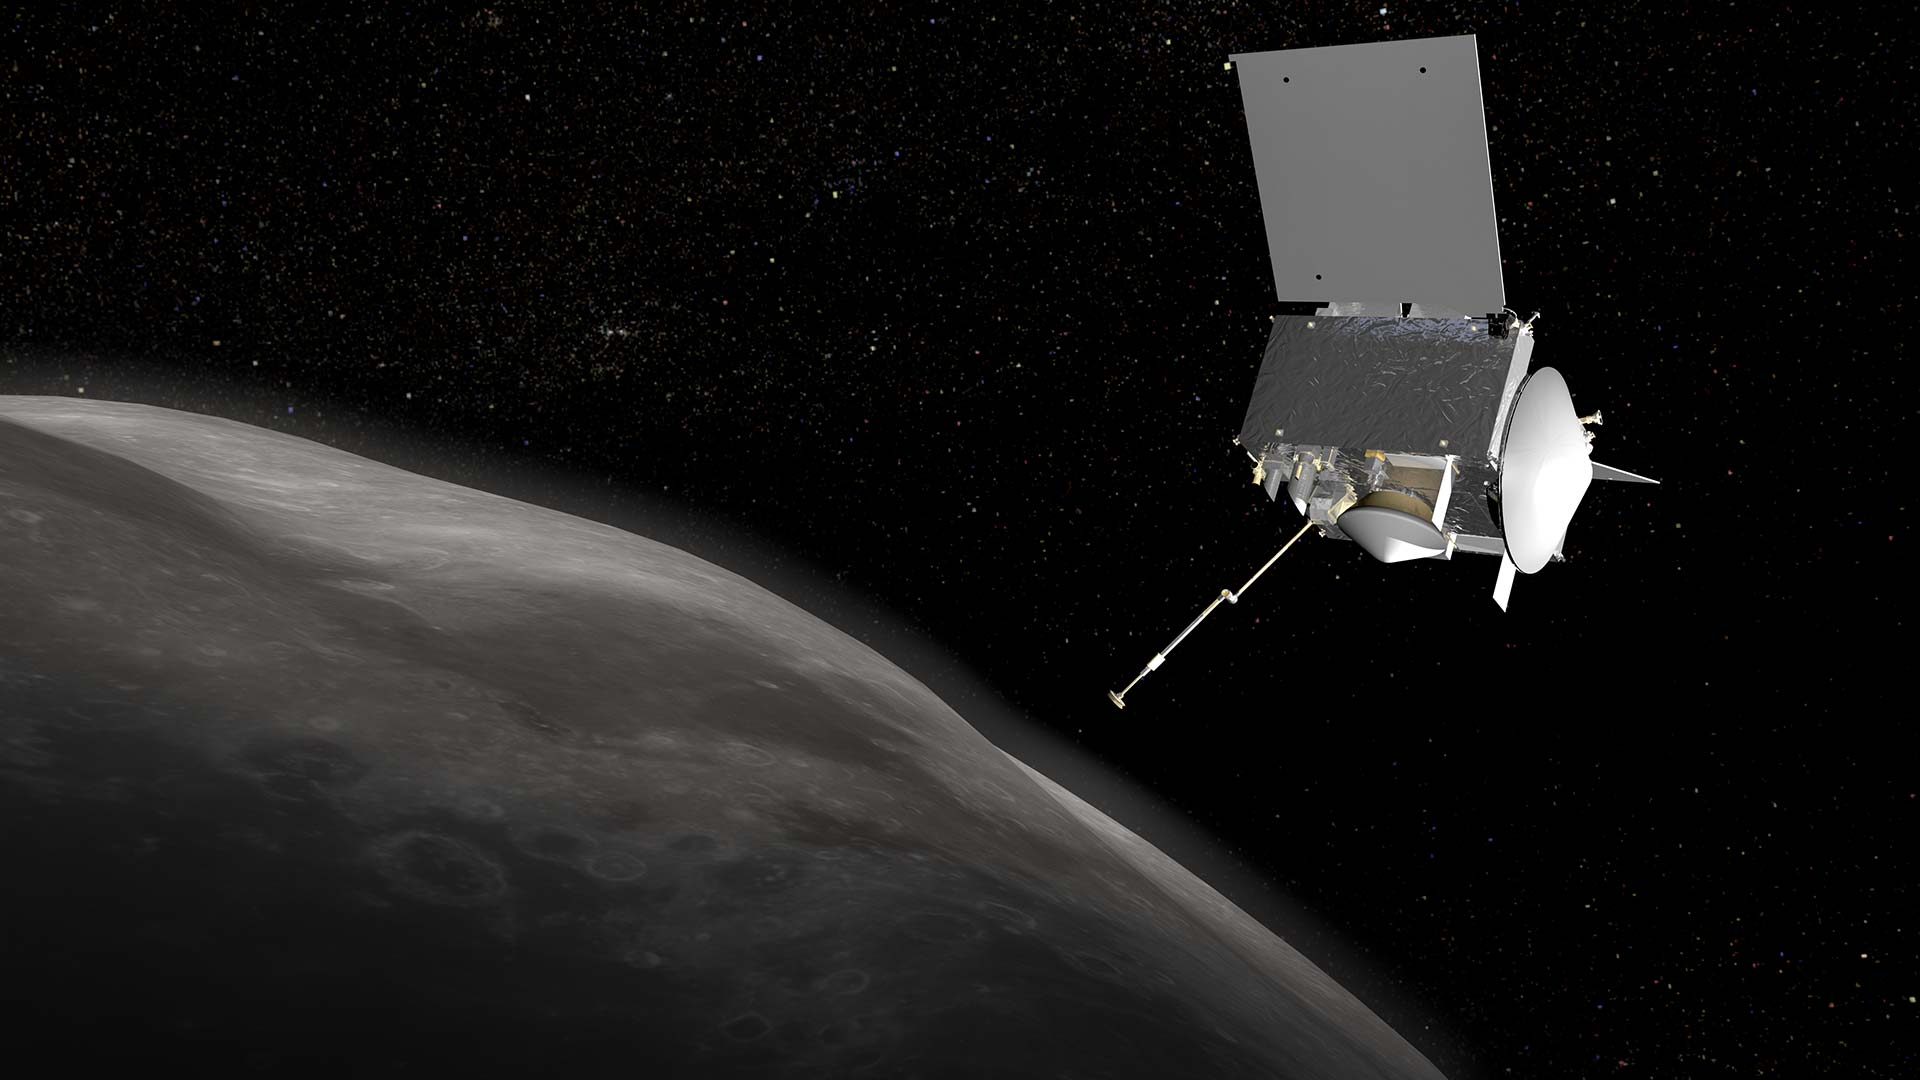 OSIRIS-REx depicted in orbit around Bennu.